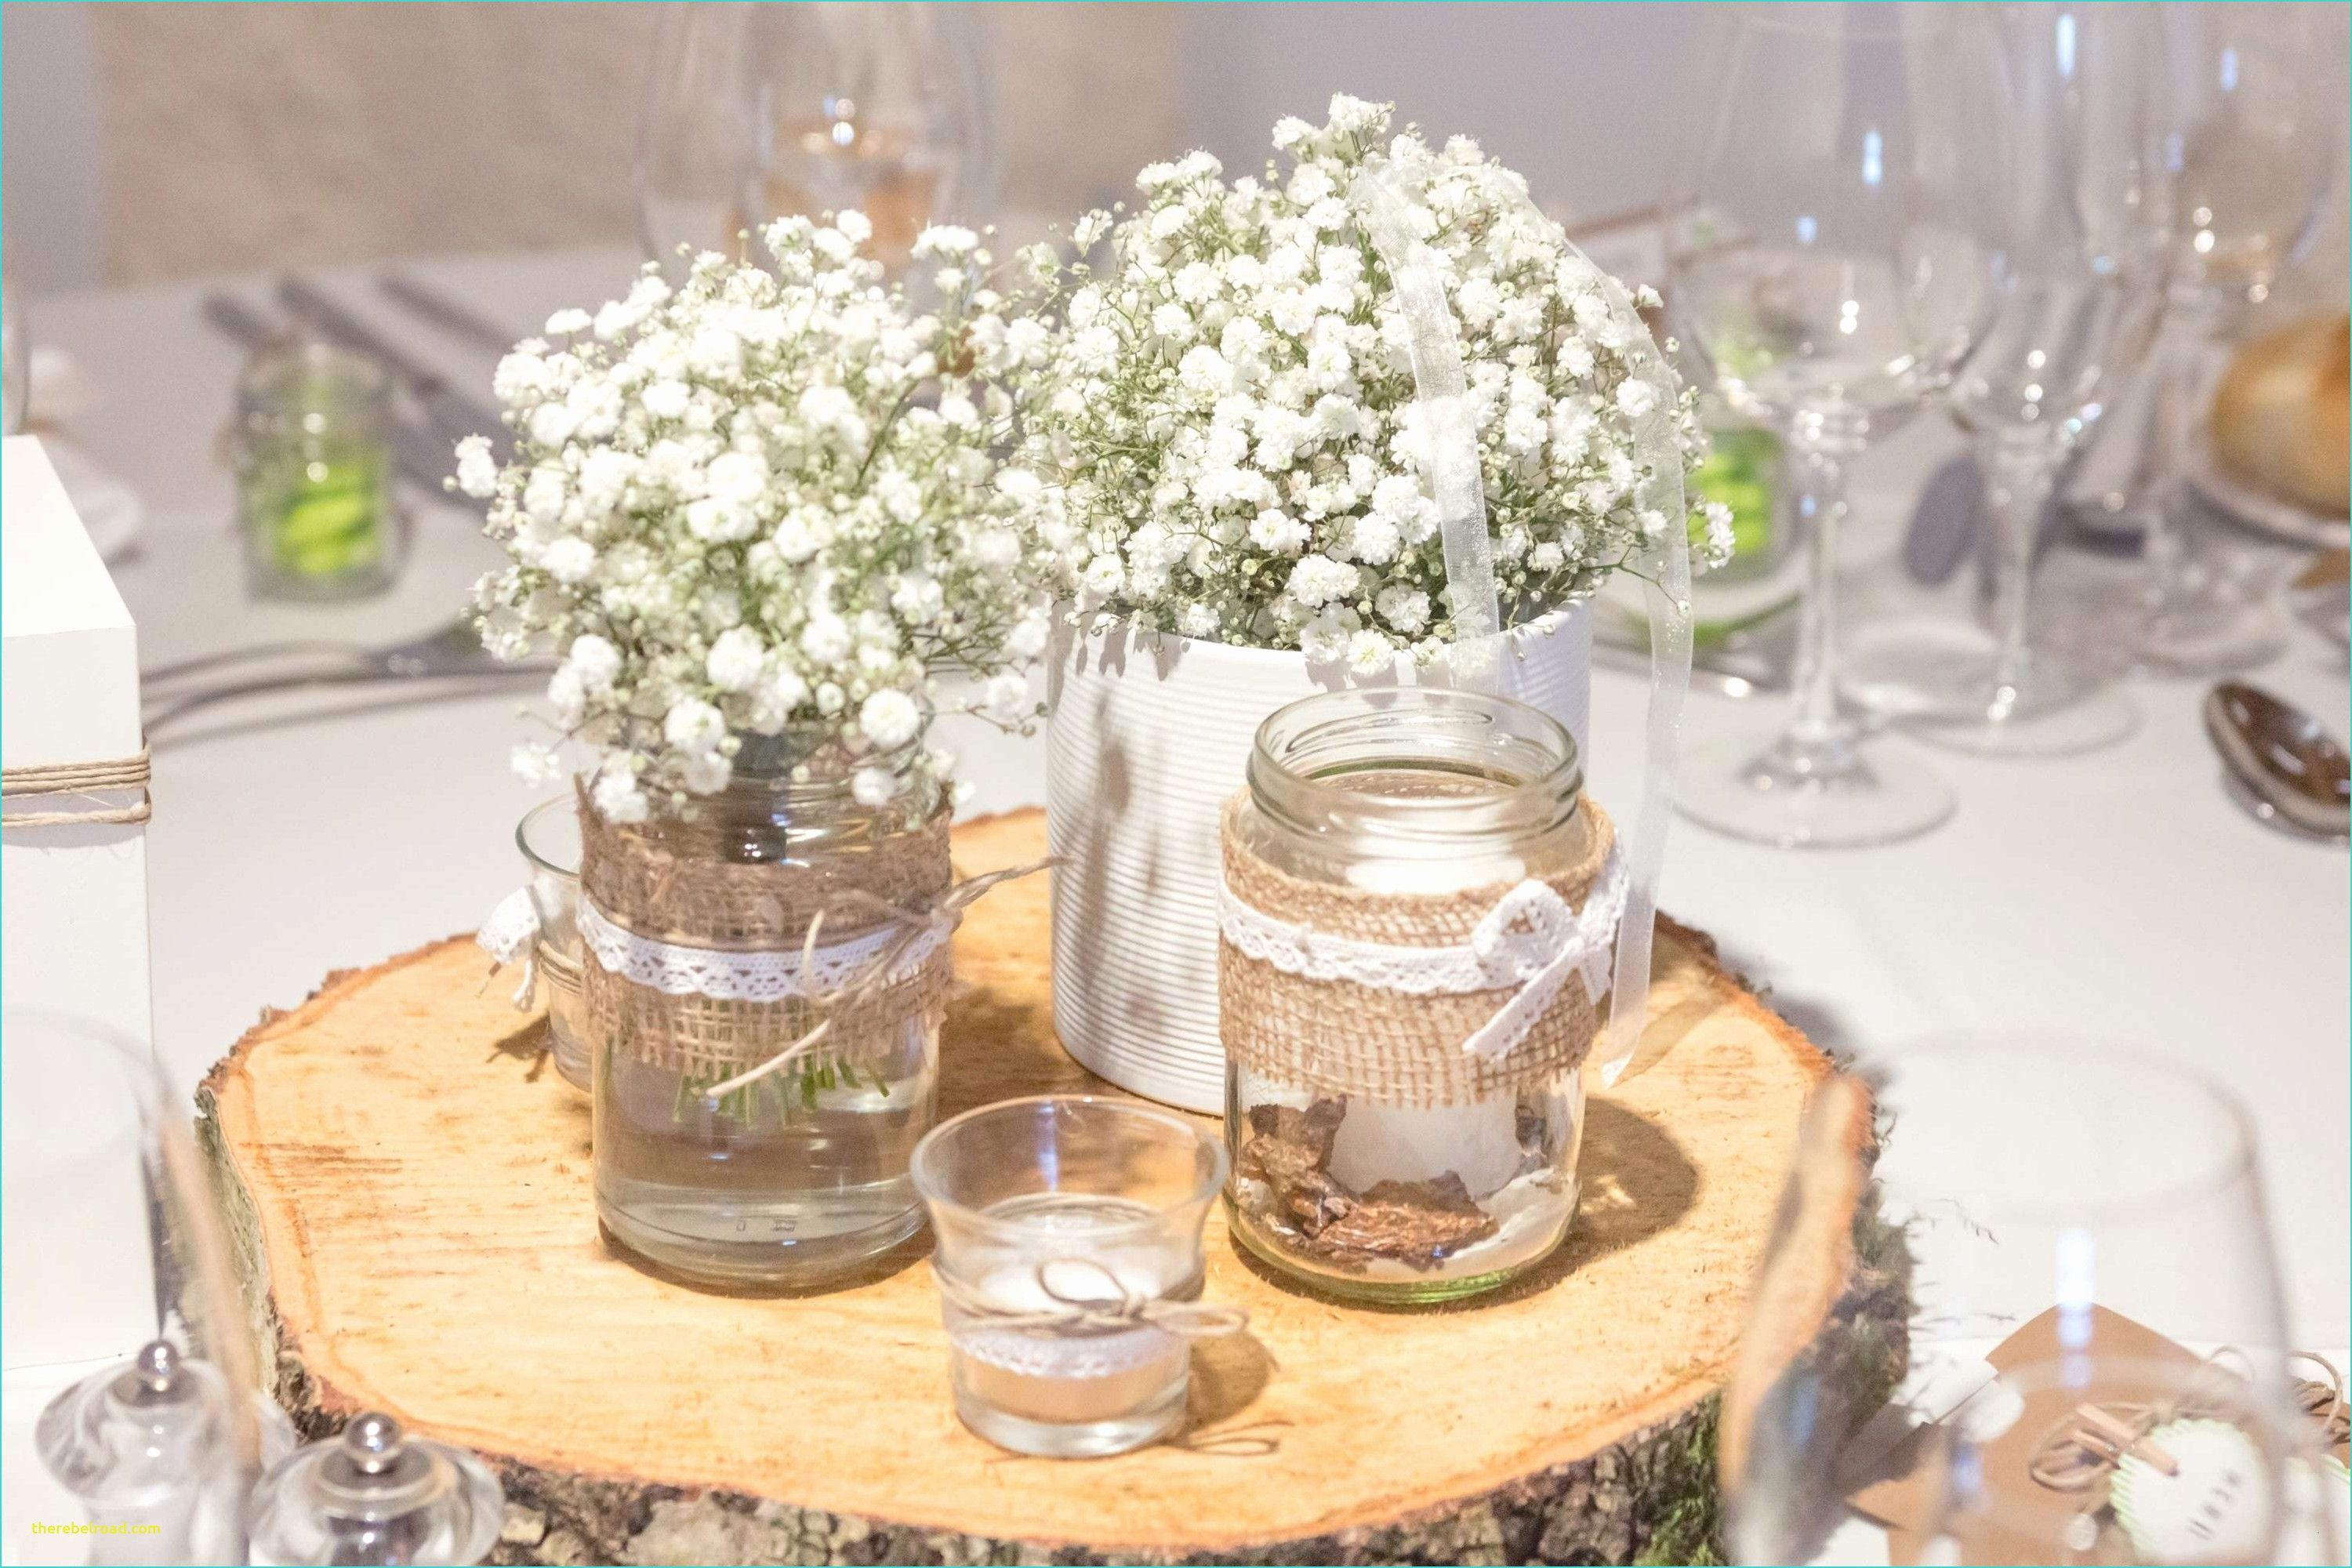 Pin By Theresa Roesch On Diamanten Hochzeit In 2020 Table Decorations Home Decor Inspiration